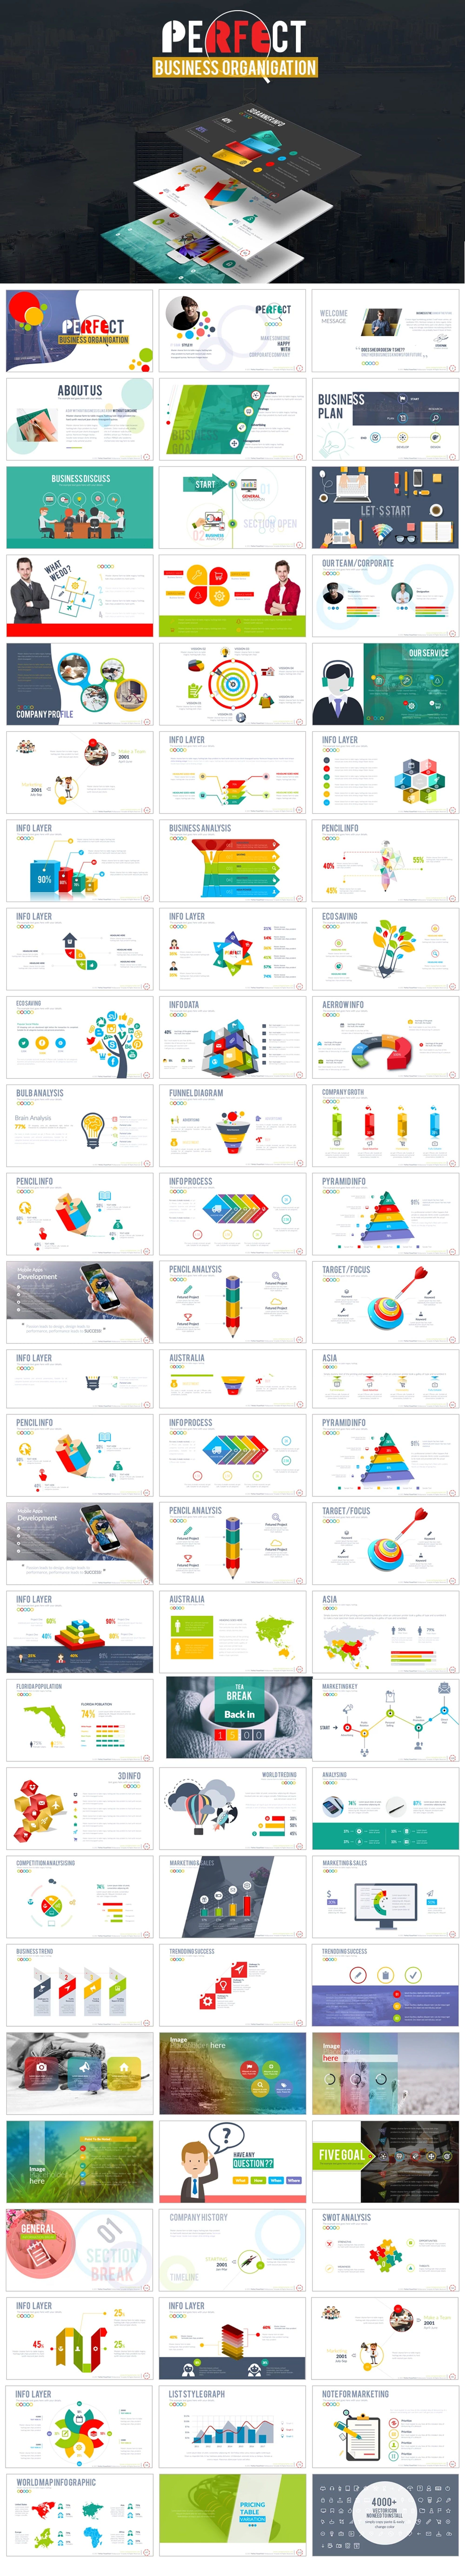 Perfect Powerpoint Template Ppt Pinterest Templates